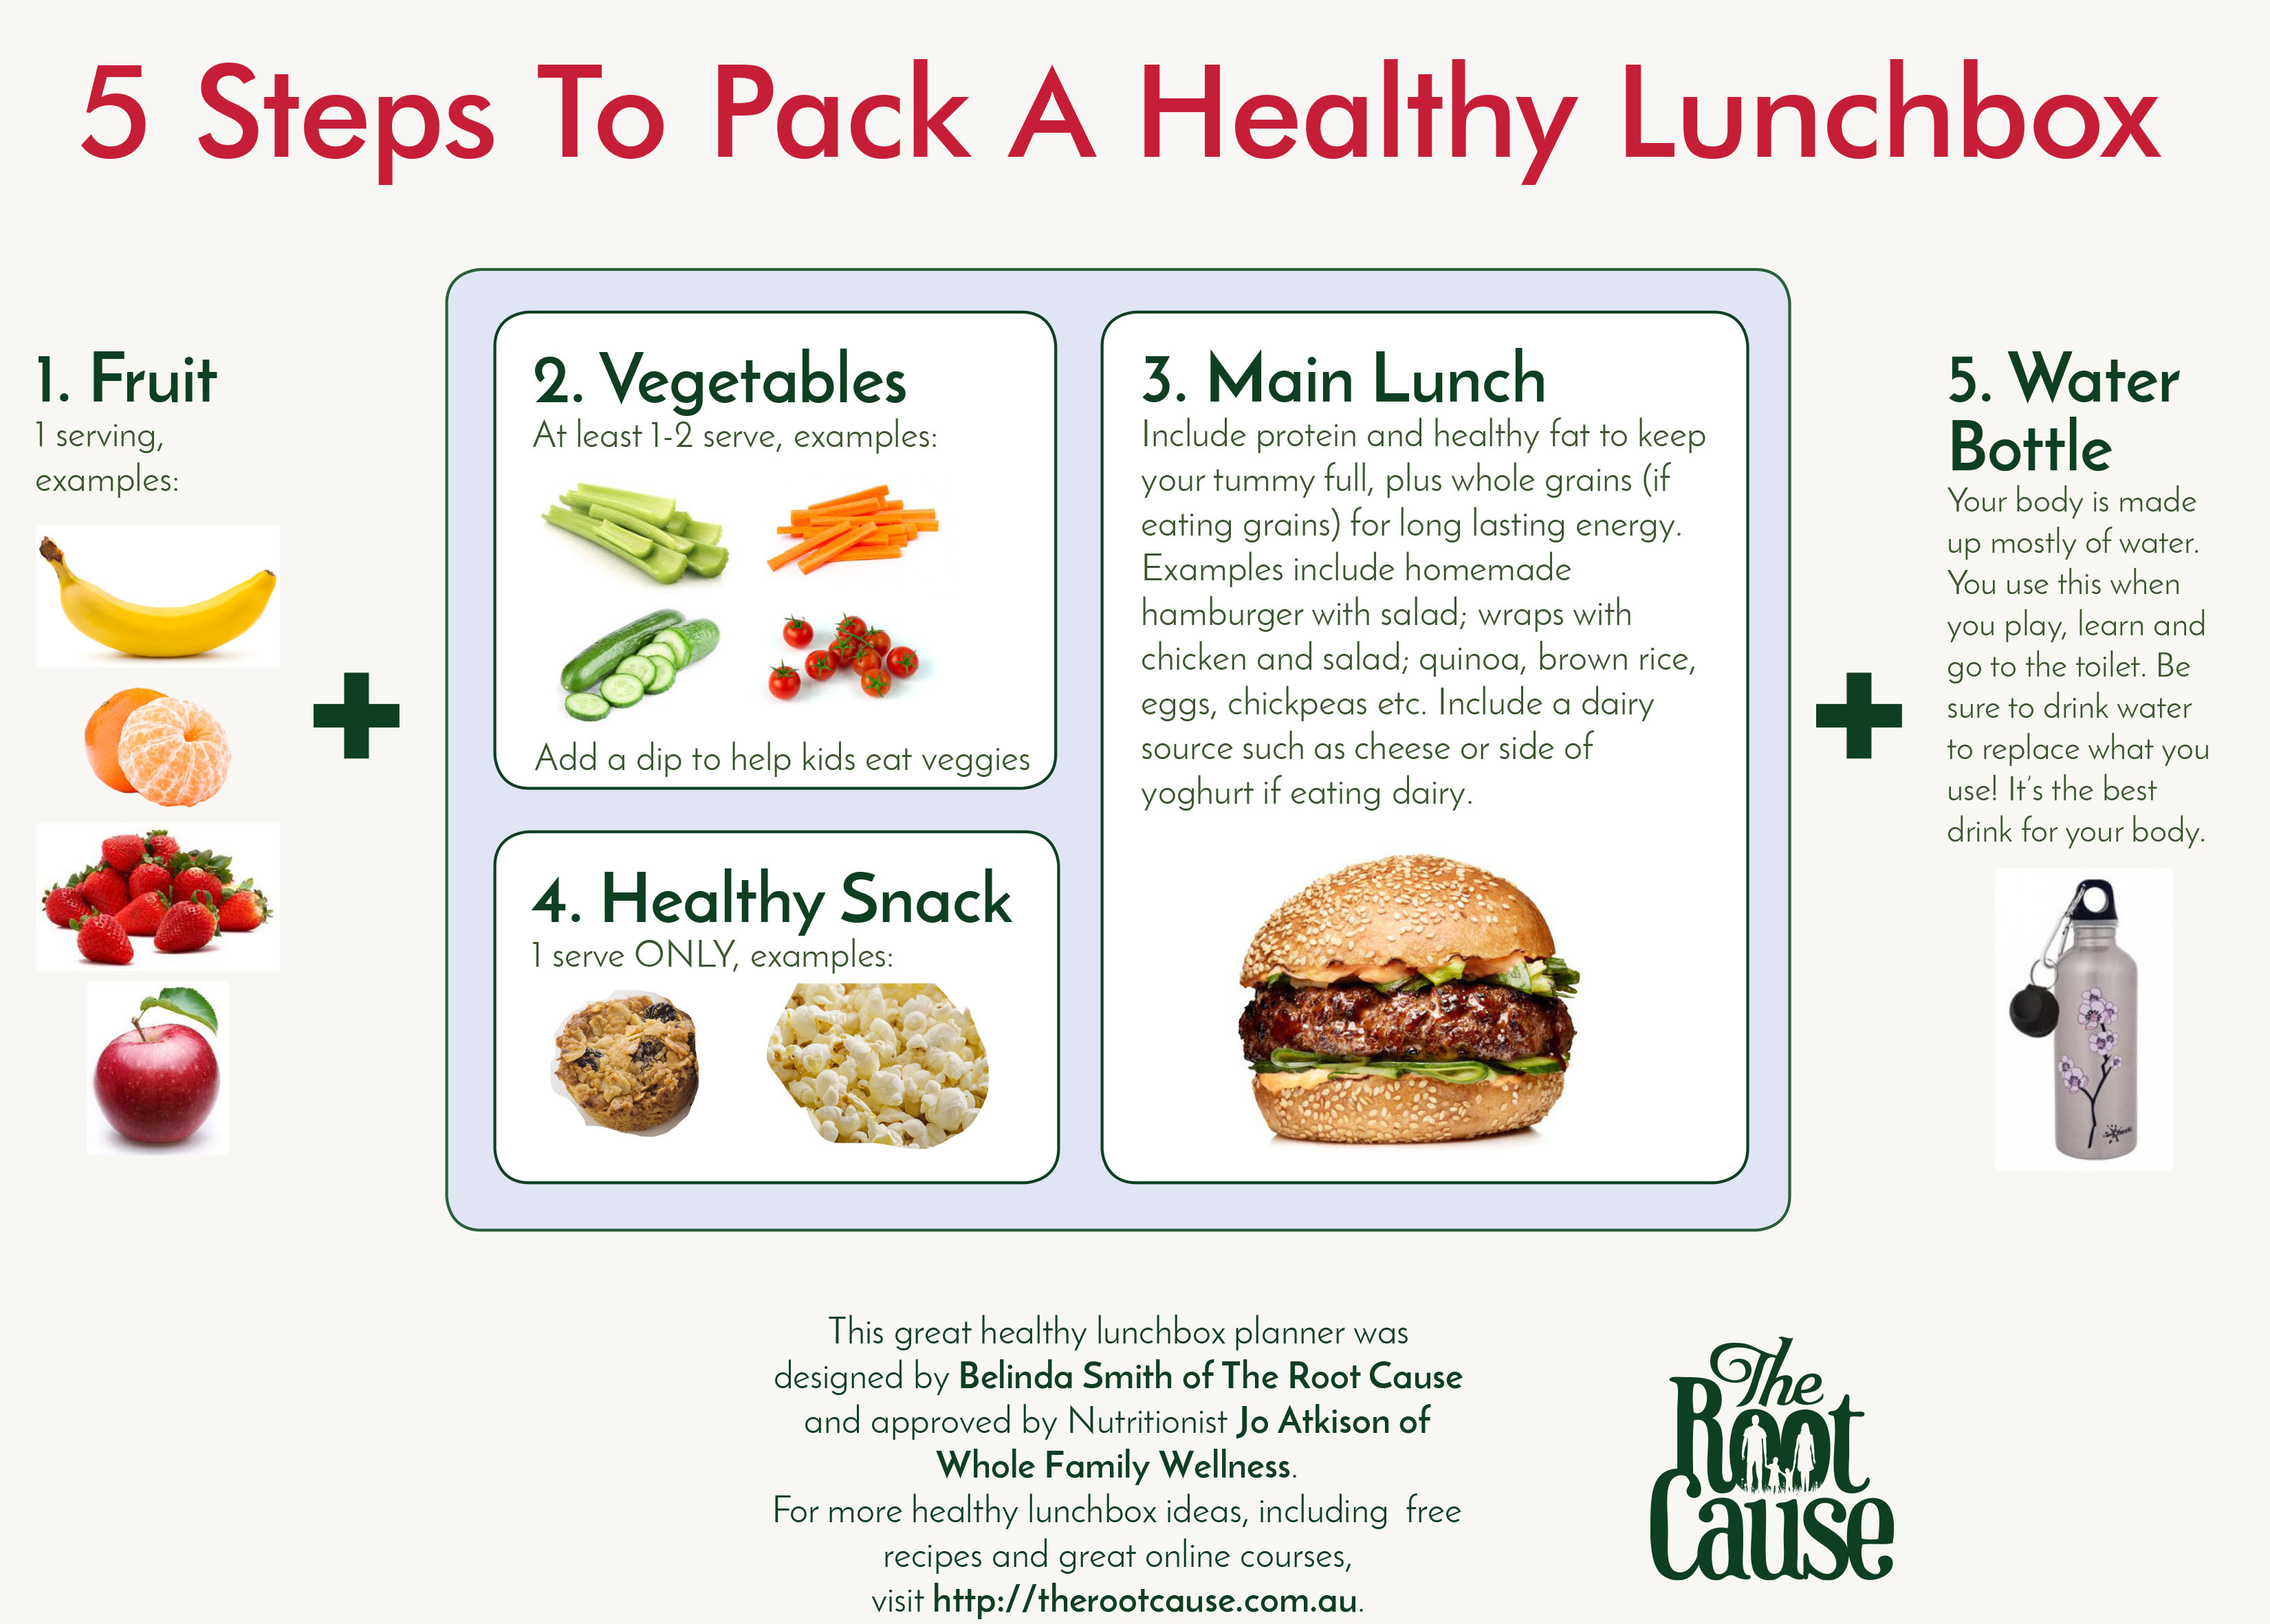 5 Steps To Pack A Healthy Lunchbox